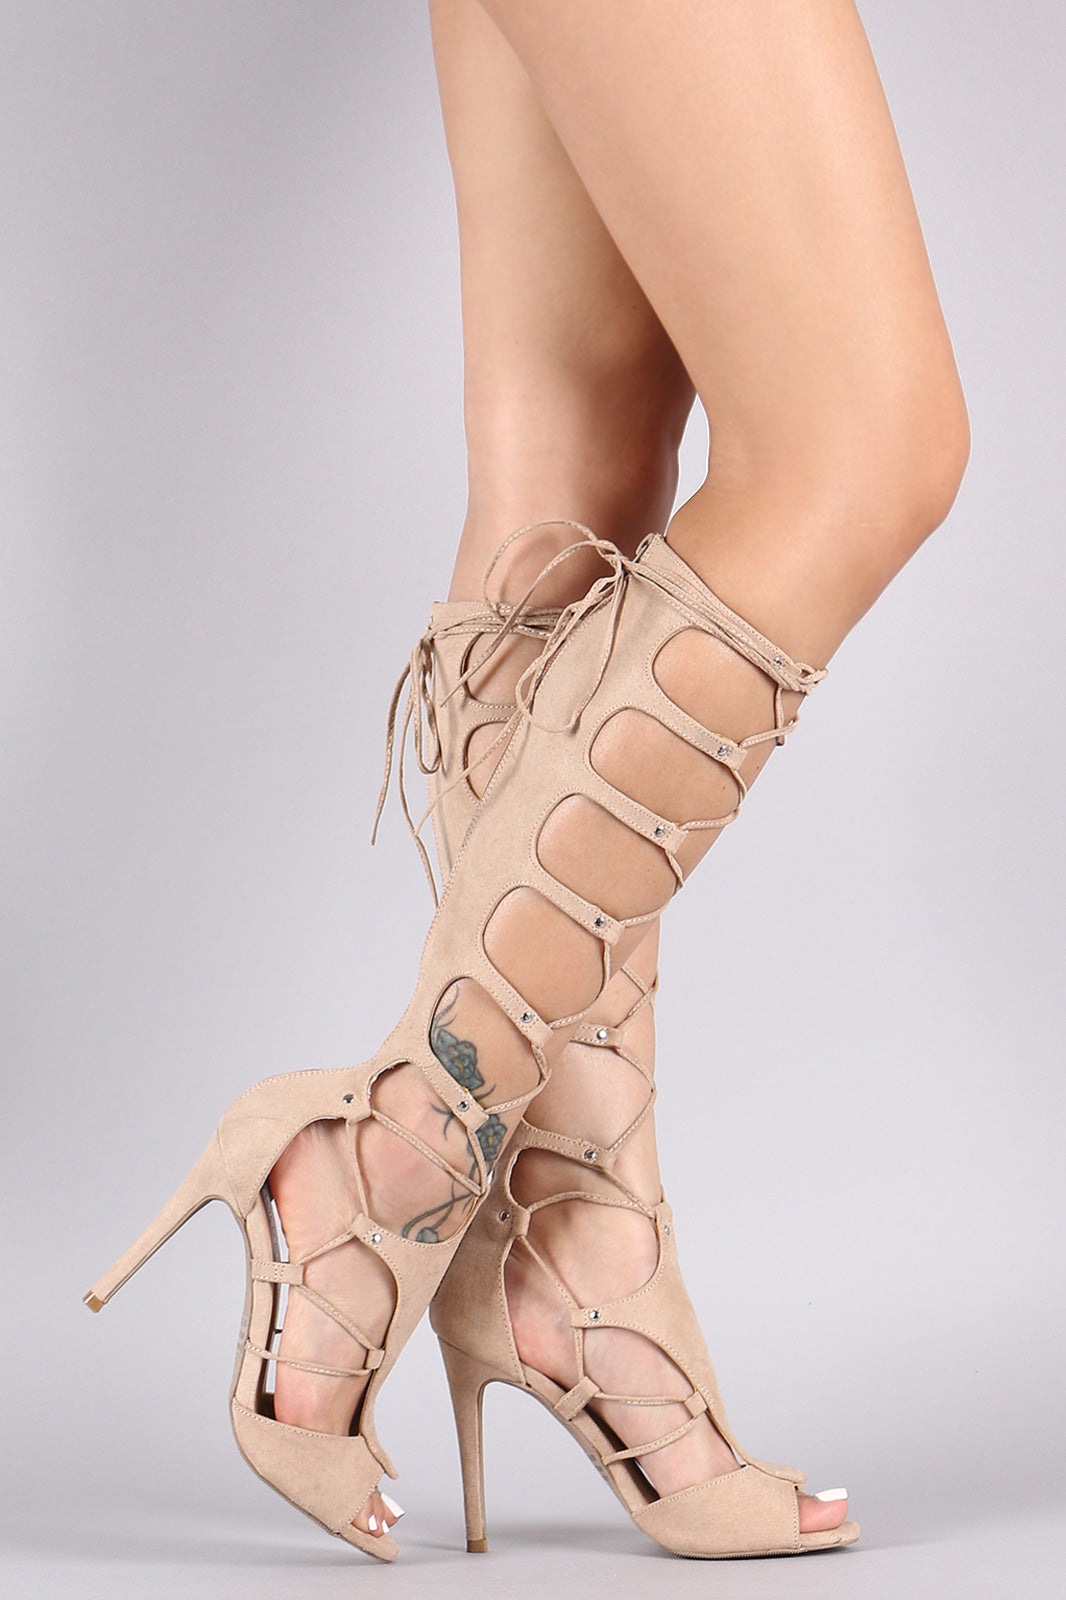 Wild Diva Lounge Suede Strappy Lace Up Stiletto Heel